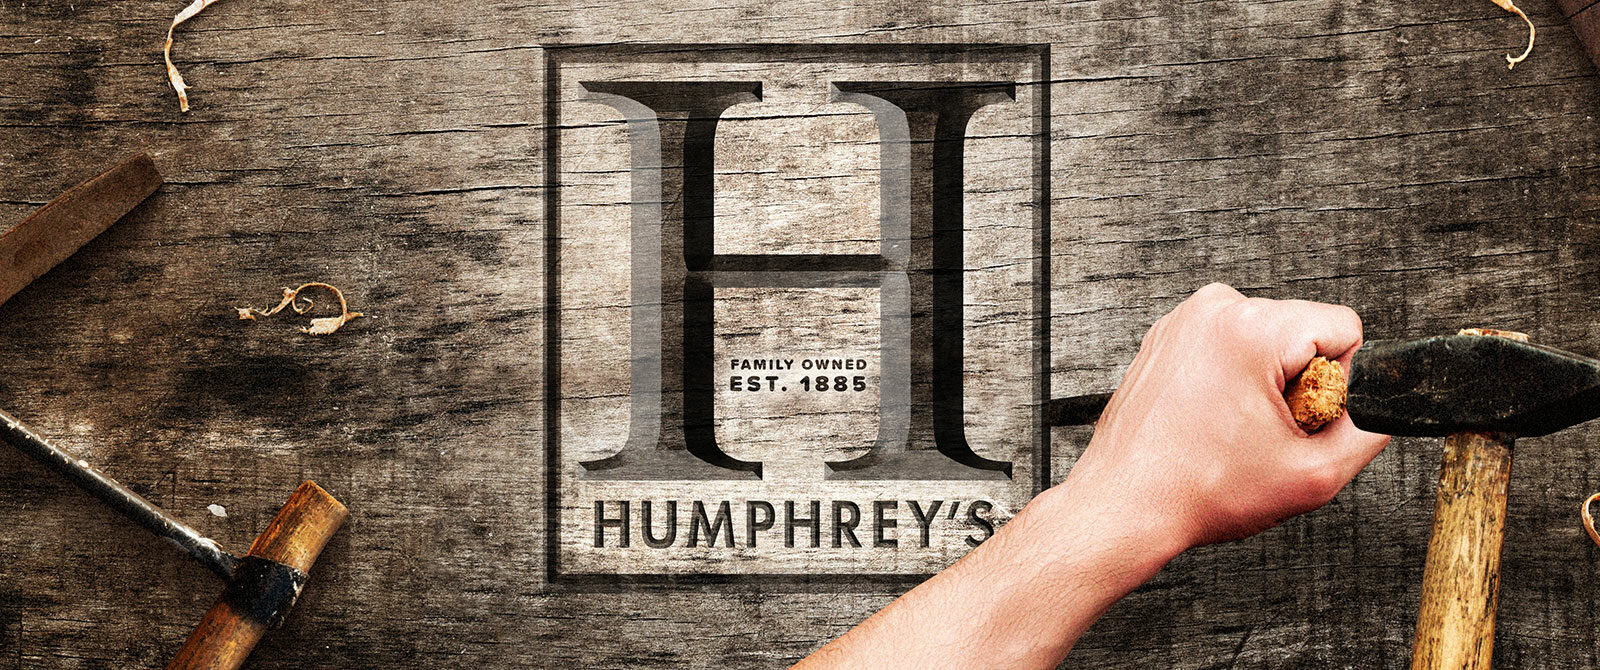 Humphreys Family Owned Est. 1885